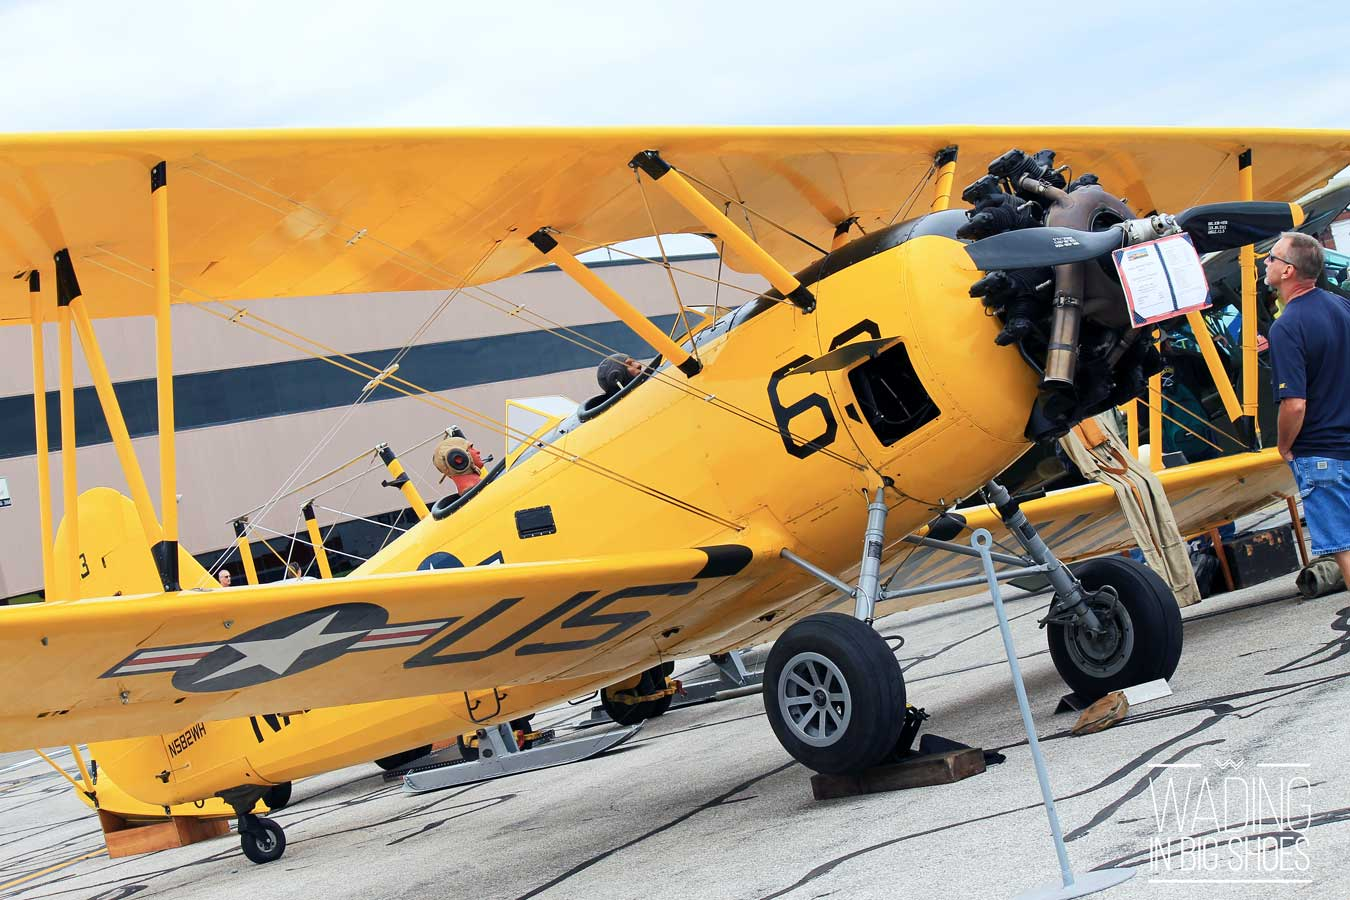 What To Expect When You Visit The Thunder Over Michigan Air Show | via Wading in Big Shoes